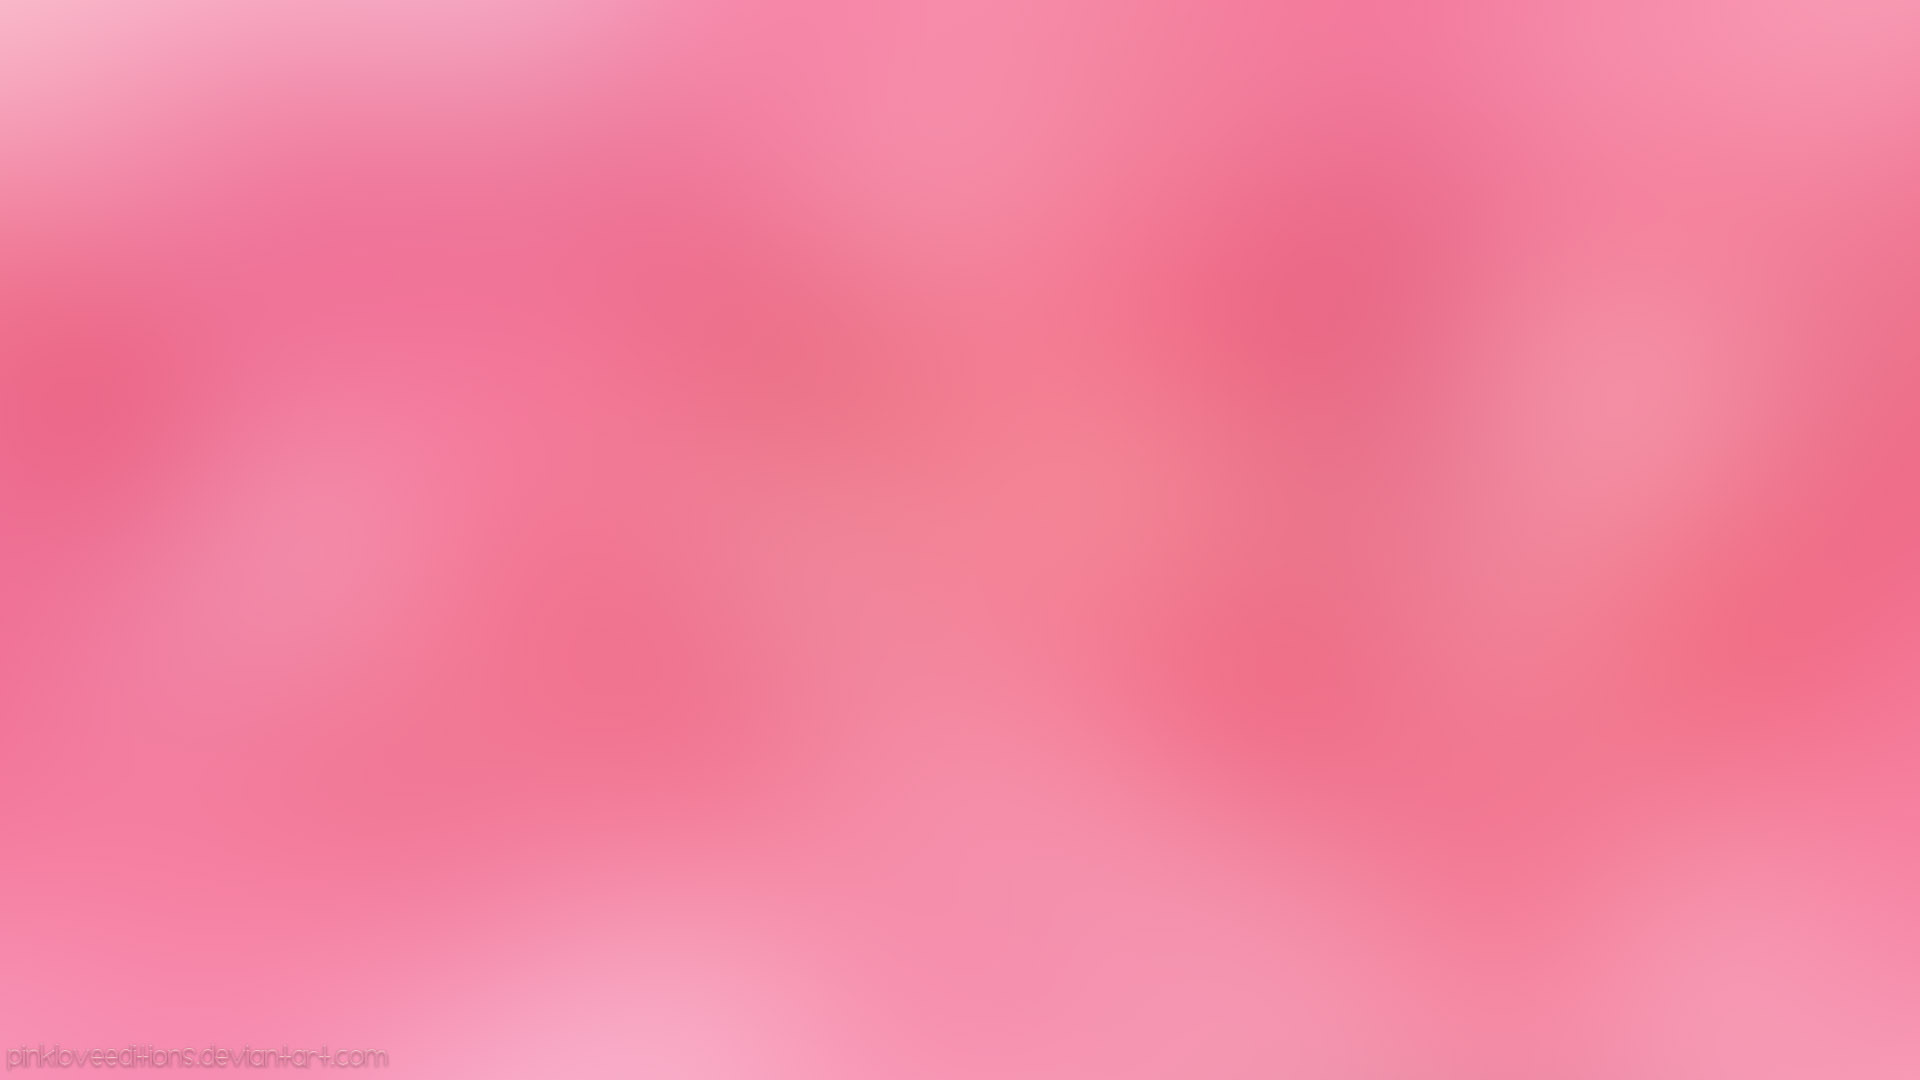 Pink Abstract Free Images